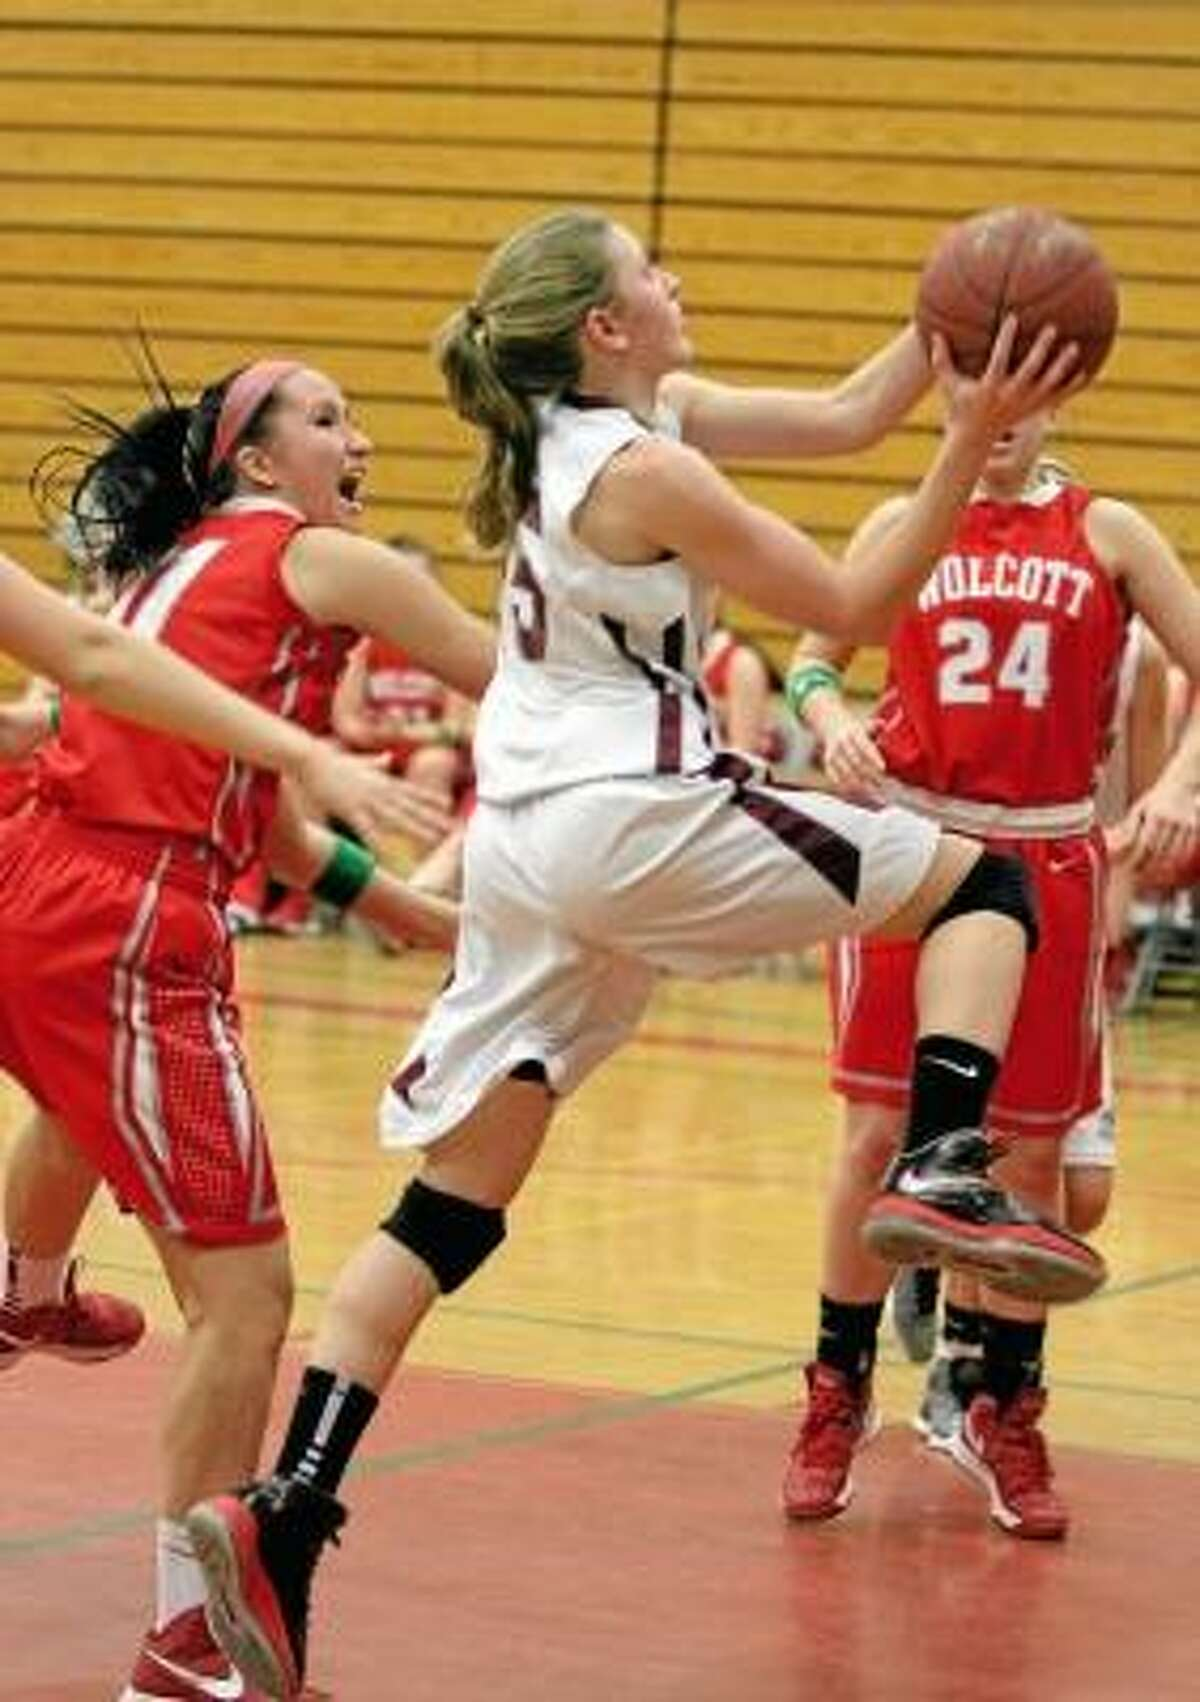 Caroline Teti launches to the basket in the Lady Raiders' win over Wolcott Friday night. Photo by Marianne Killackey/Special to Register Citizen